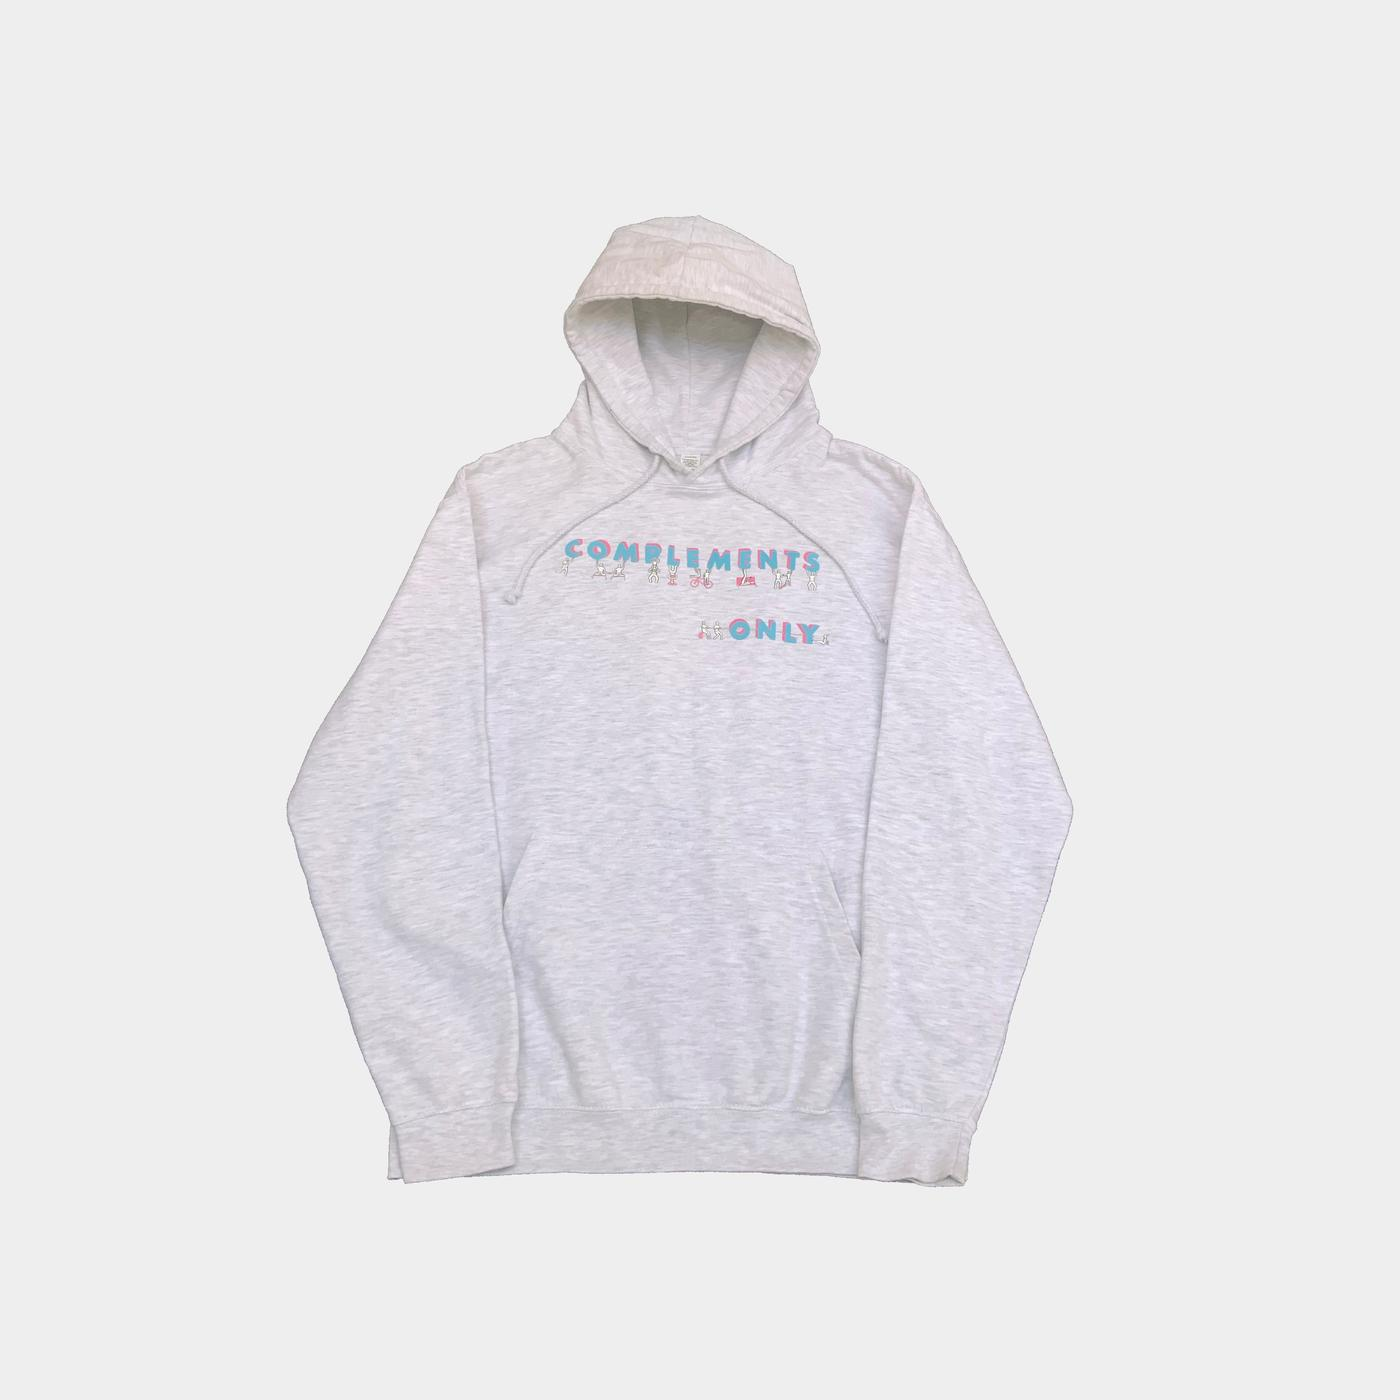 complements only hoodie (grey)